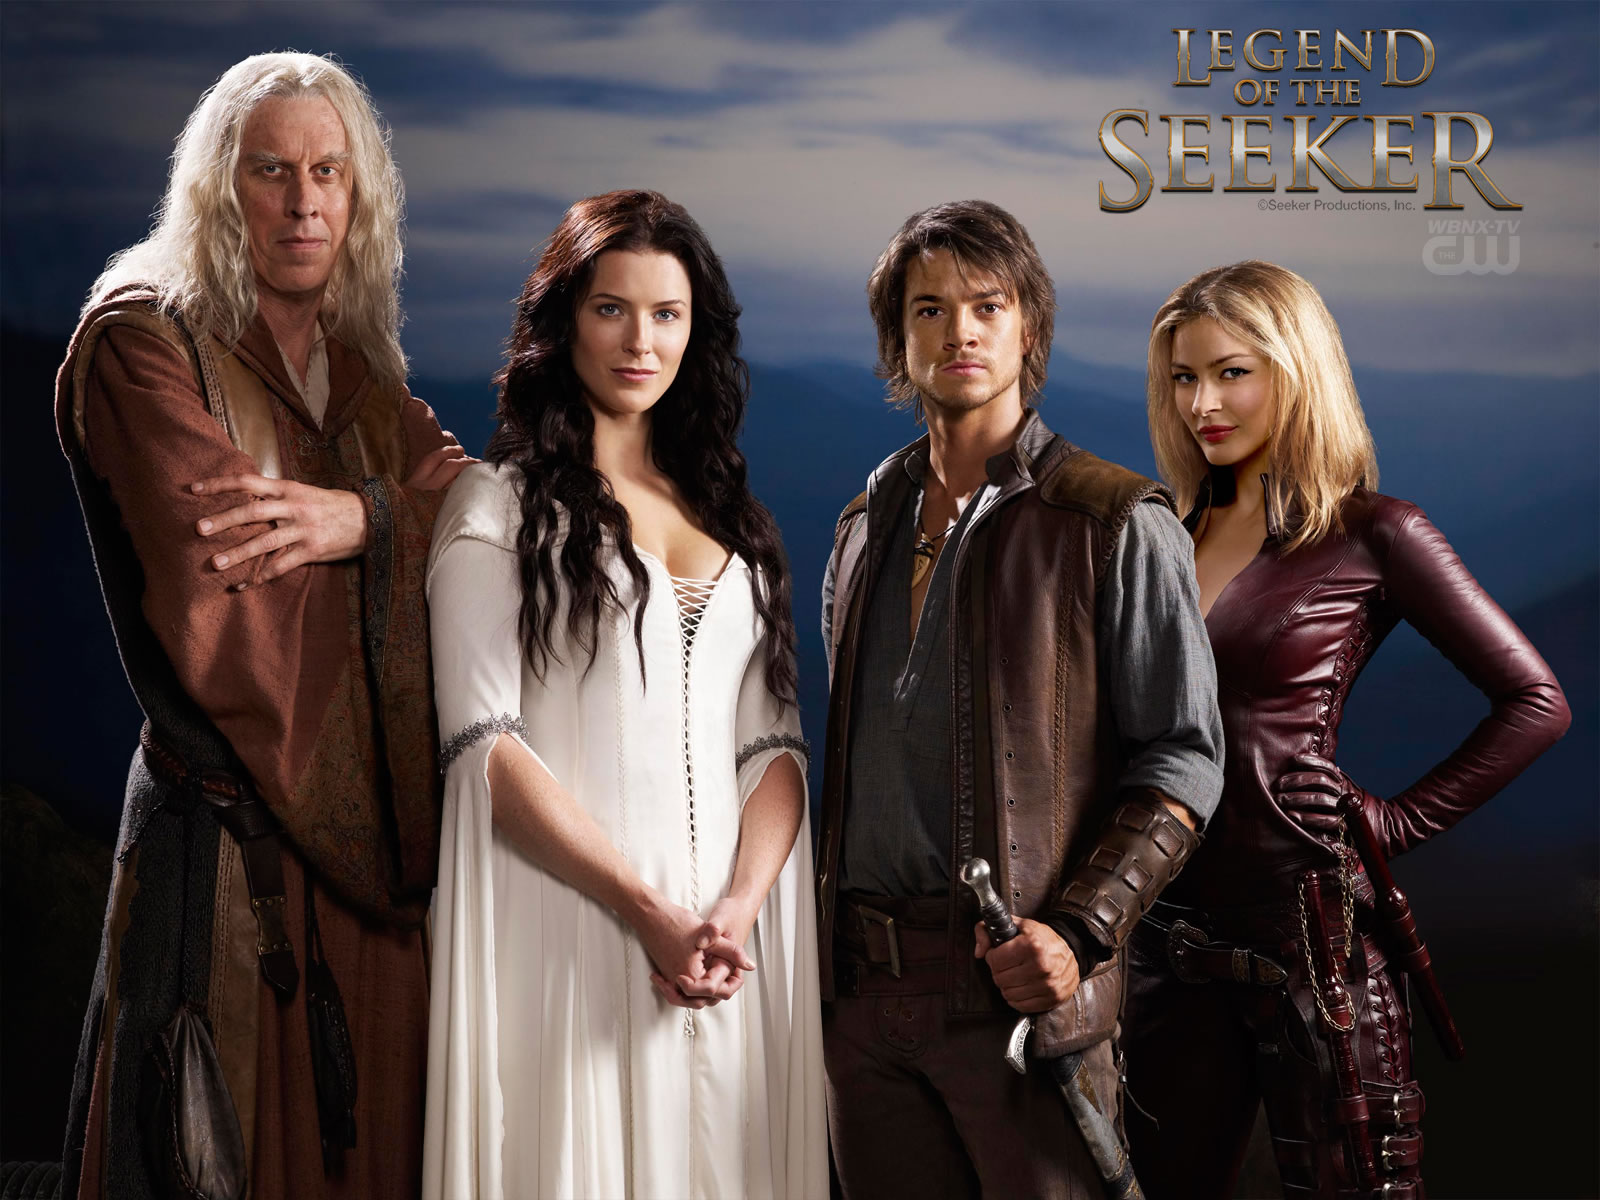 legend of the seeker free online